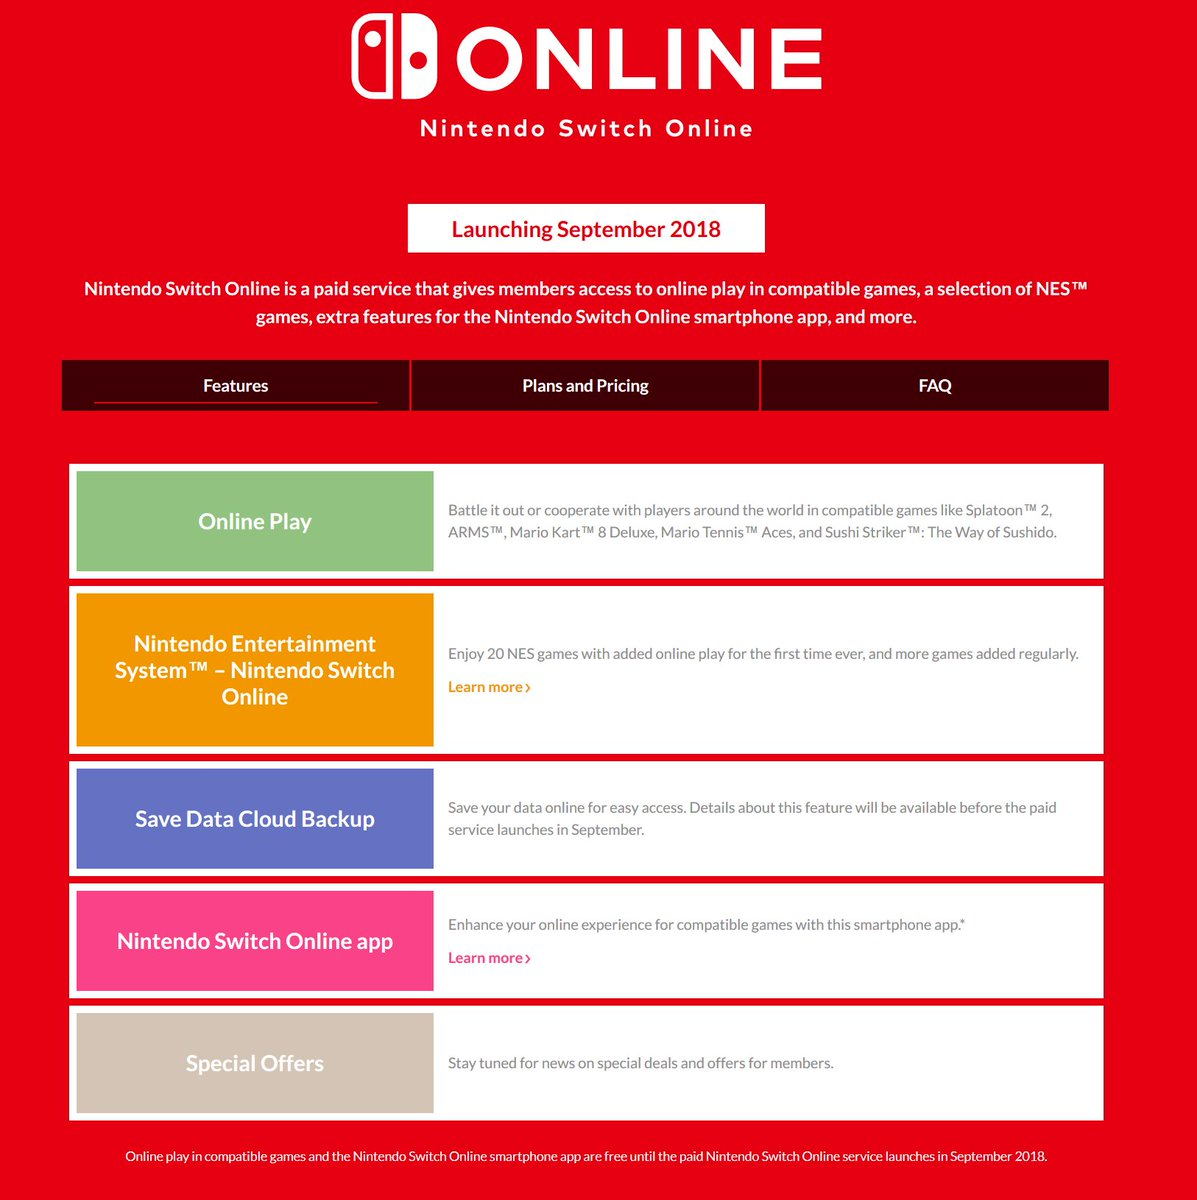 Nintendeal On Twitter Nintendo Switch Online Family Plan Is Mario Tennis Aces English Us Games Available At Launch Nes Have Coop Screen Share And Controller Passing Cloud Saves Still Coming Sept 2018pic Wv6spcd8b1